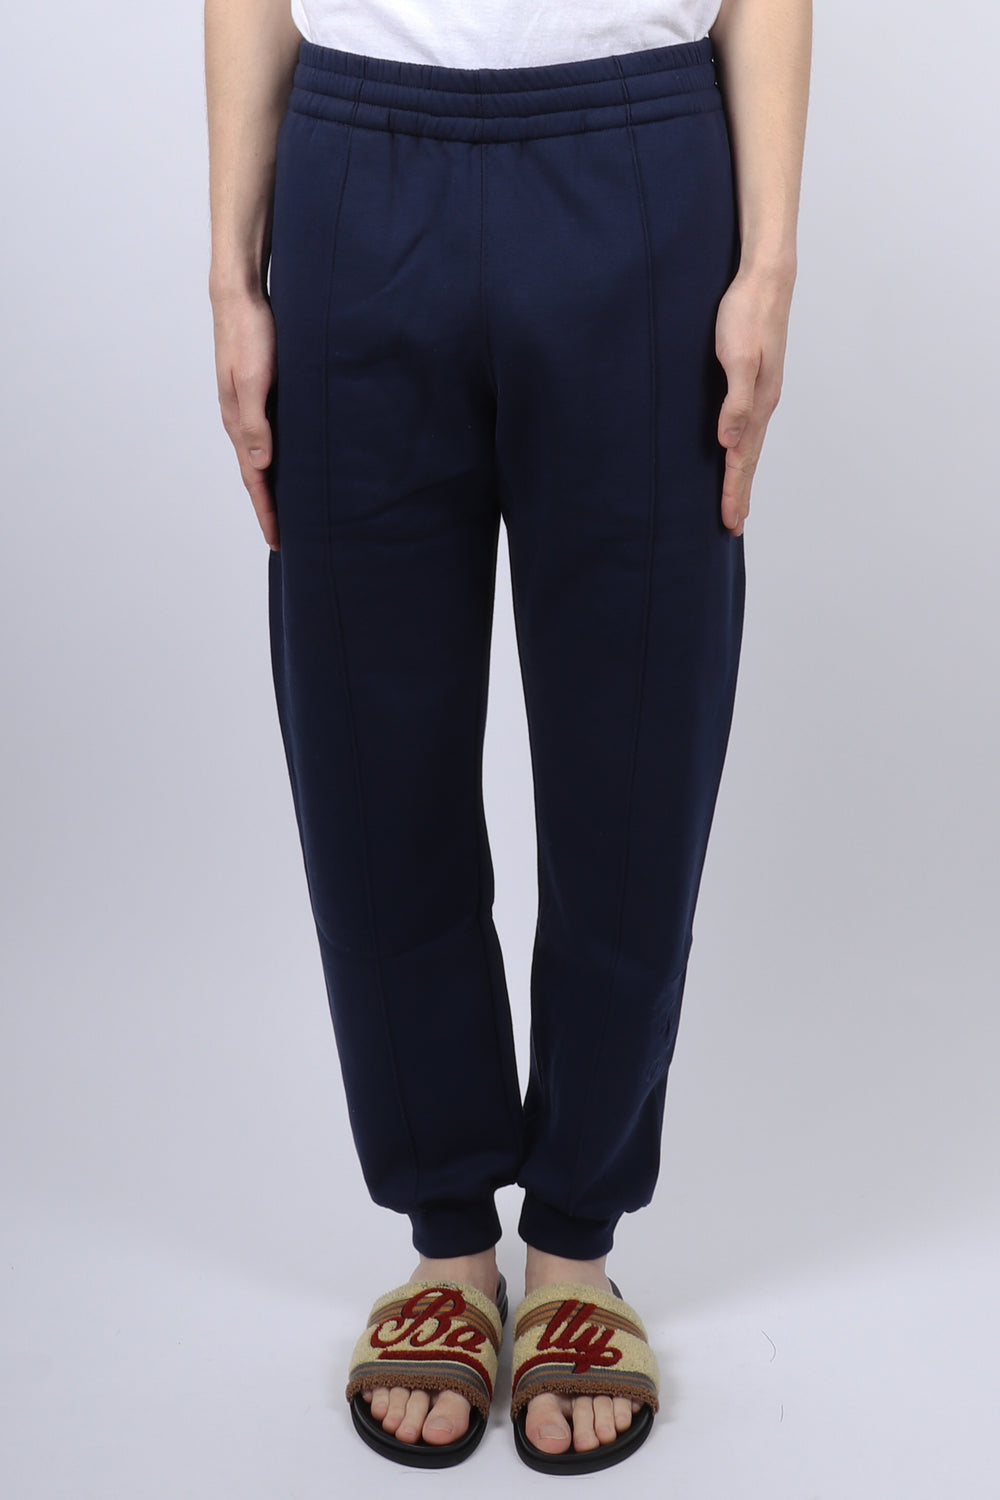 BALLY Classic Logo Sweatpant In Navy